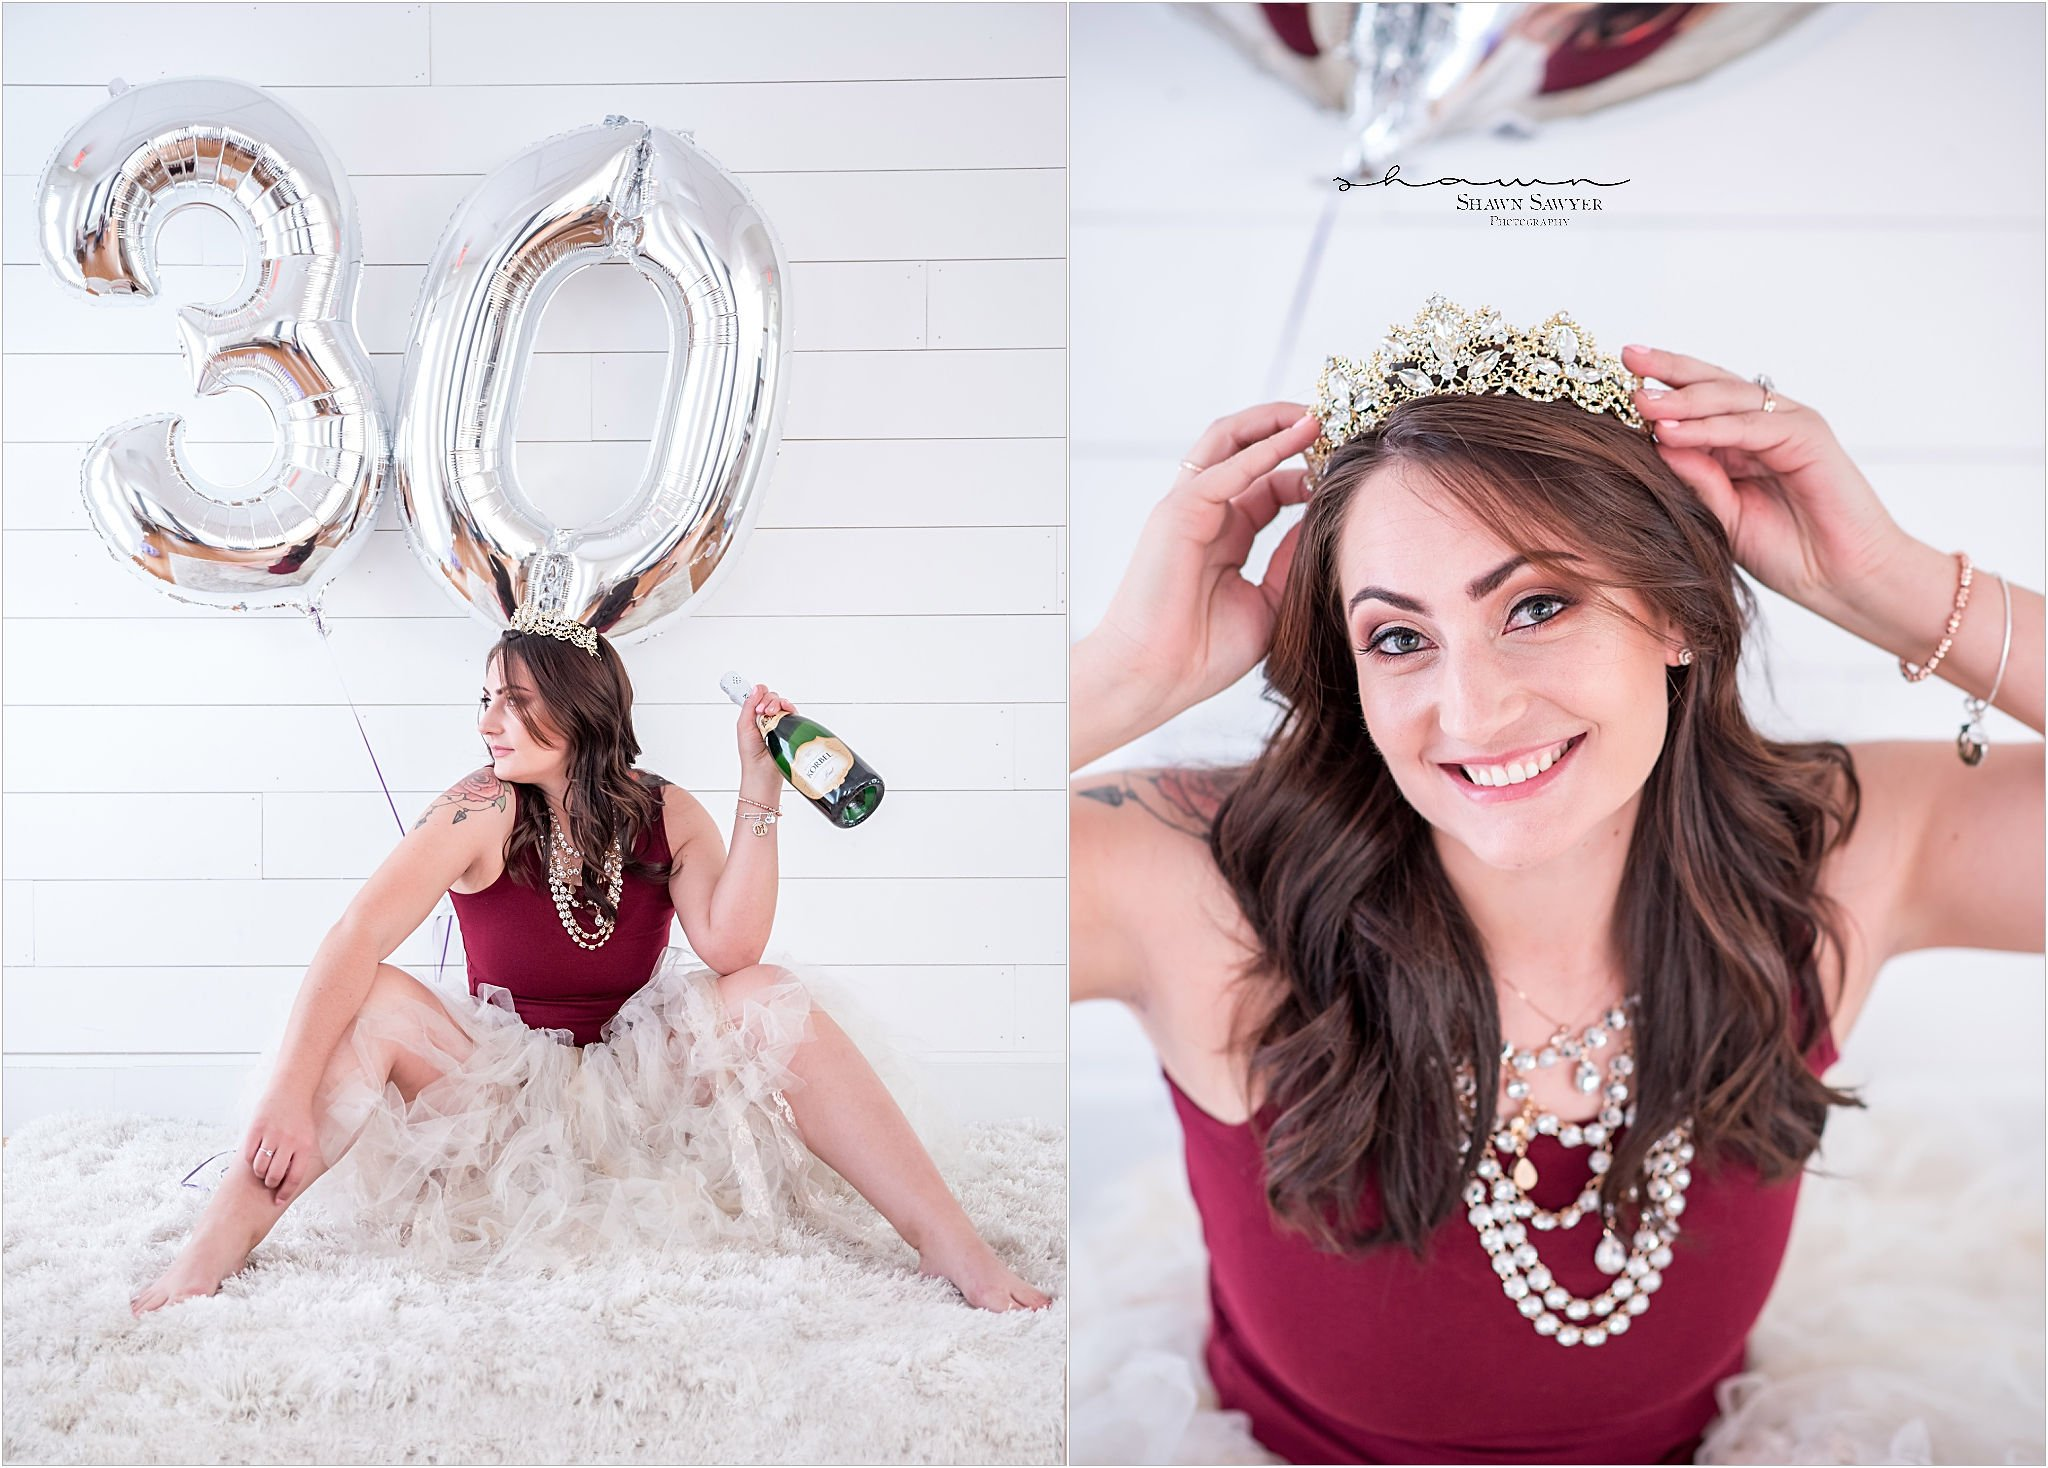 Shawn Sawyer Photography 40th Birthday Adult Cake Smash The Studio Hampton Roads If you're a portrait photographer, chances are you've seen images from a boudoir photo shoot, or even been asked to take a boudoir photo yourself. the studio hampton roads